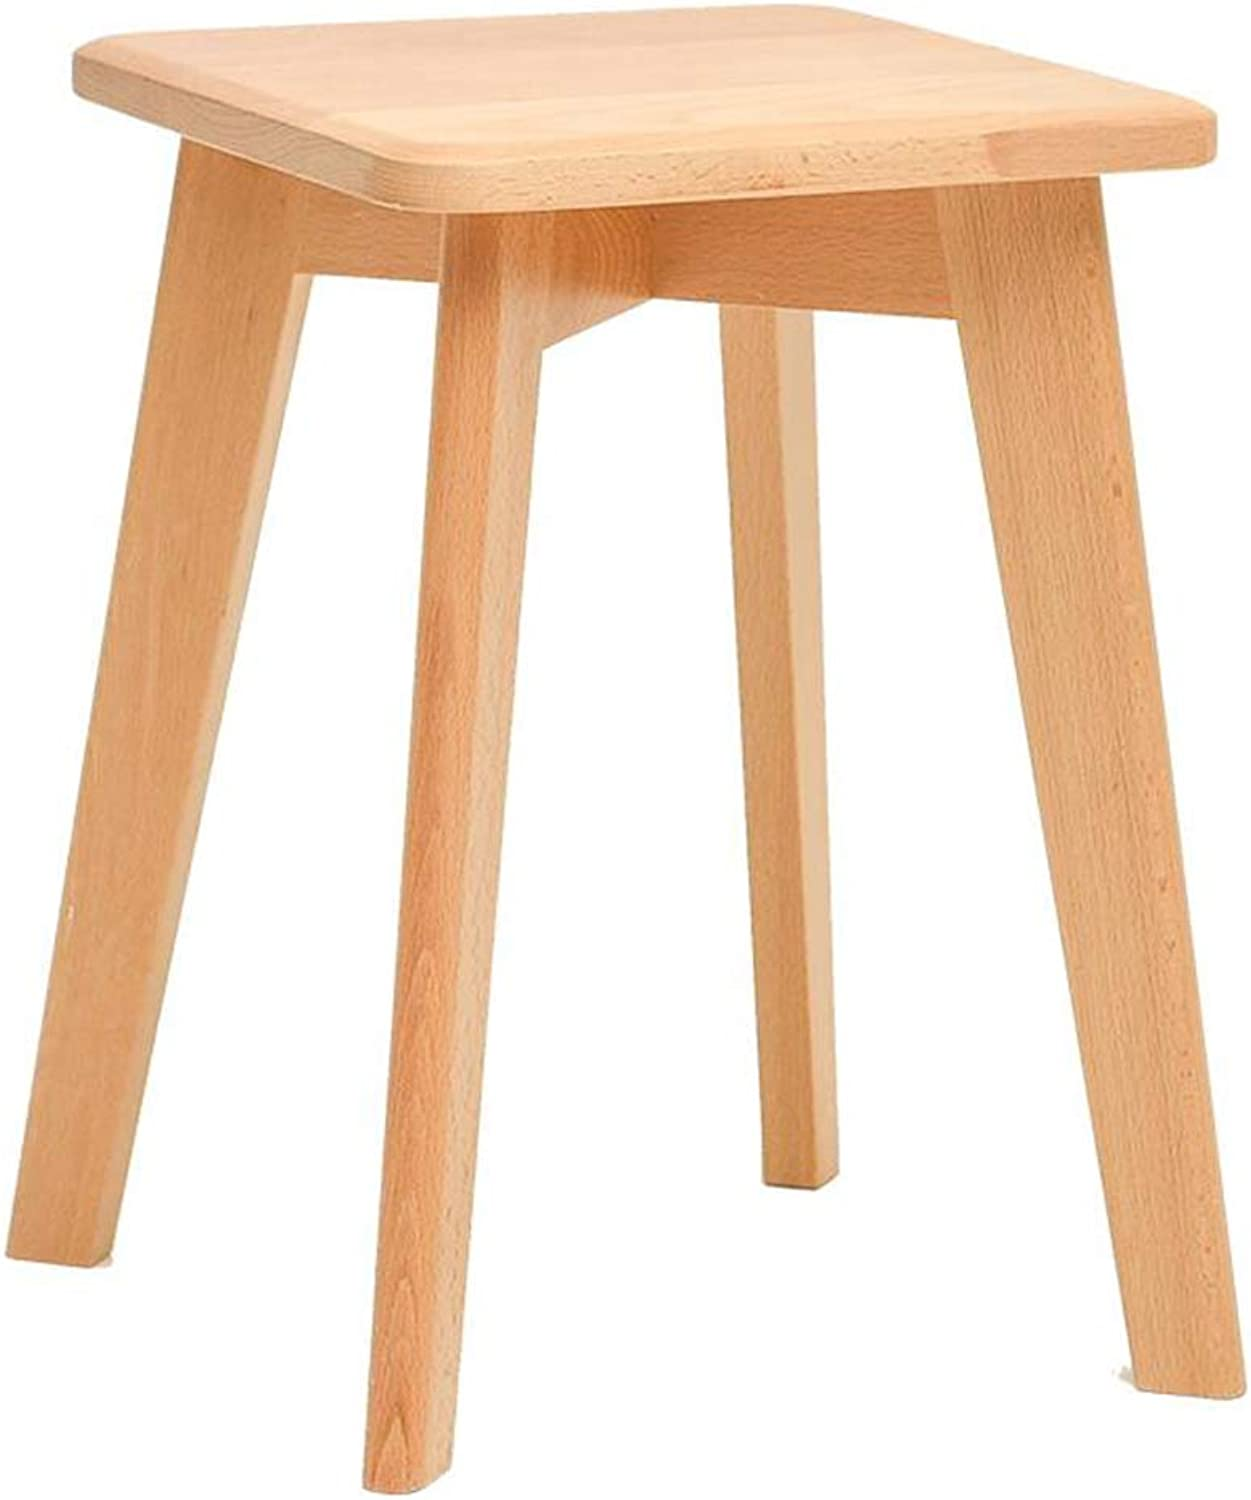 Wooden Dining Stool Makeup Stool Dressing Stool Square Stool Living Room Table Stool Home Small Bench (color   A)